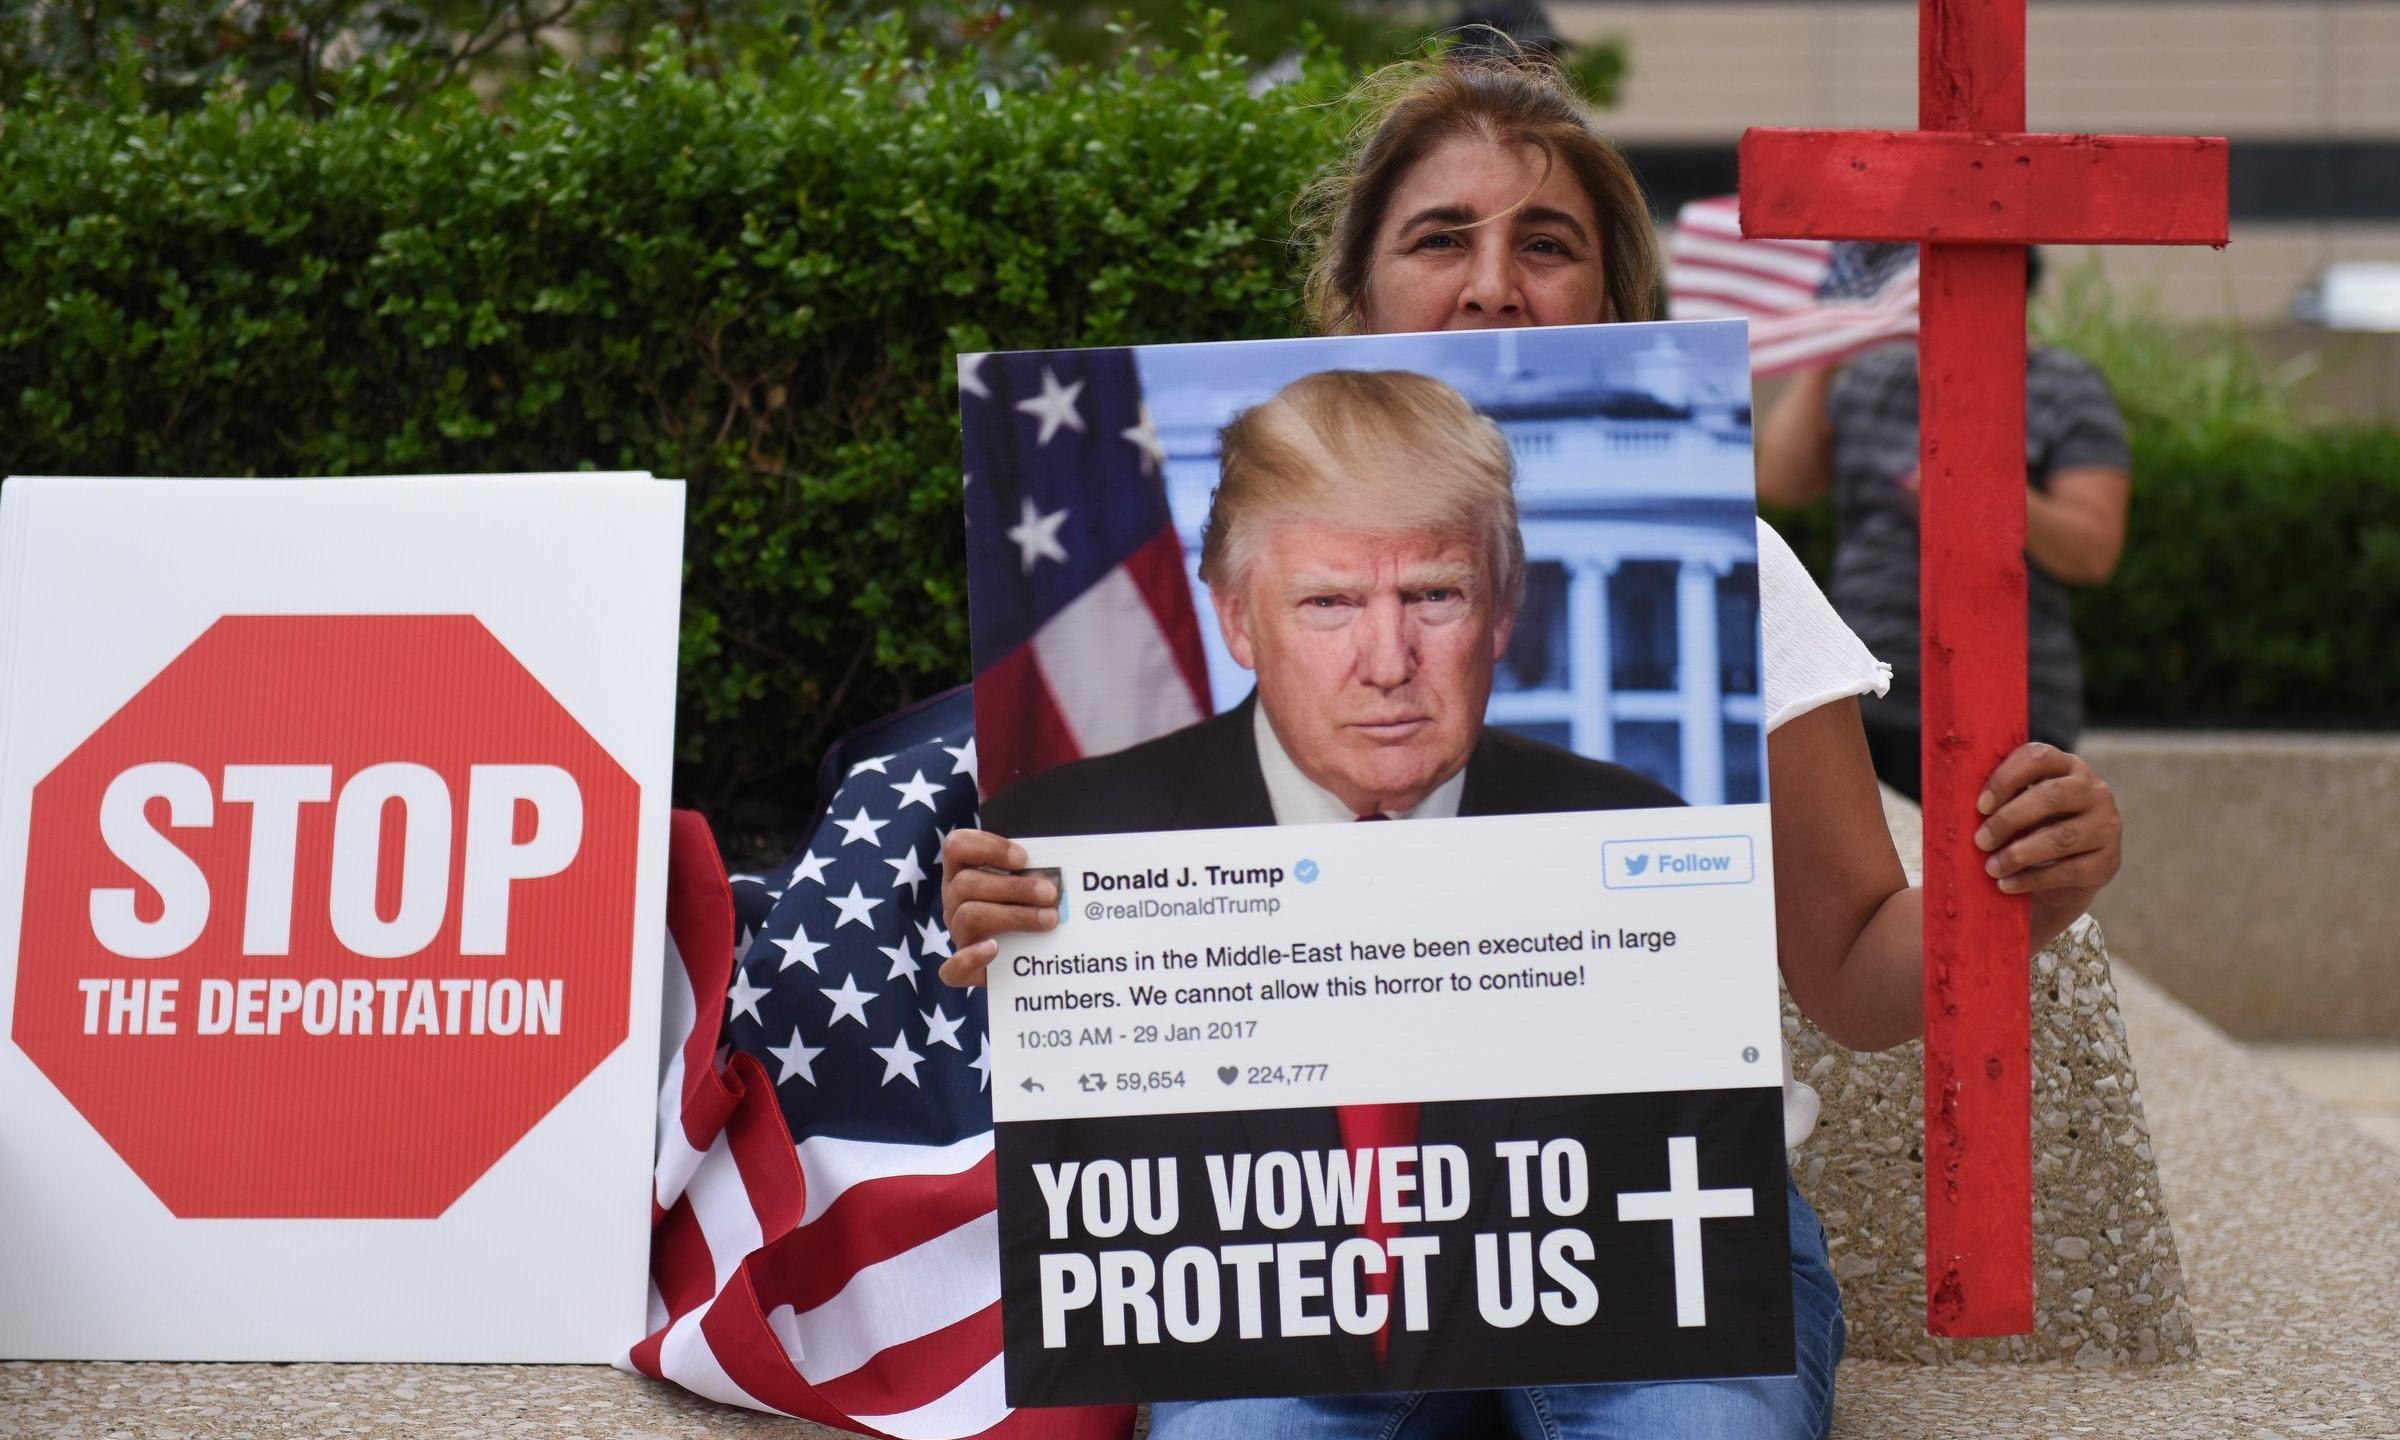 Iraqi Christians facing deportation feel conned by Trump: 'You vowed to protect us'